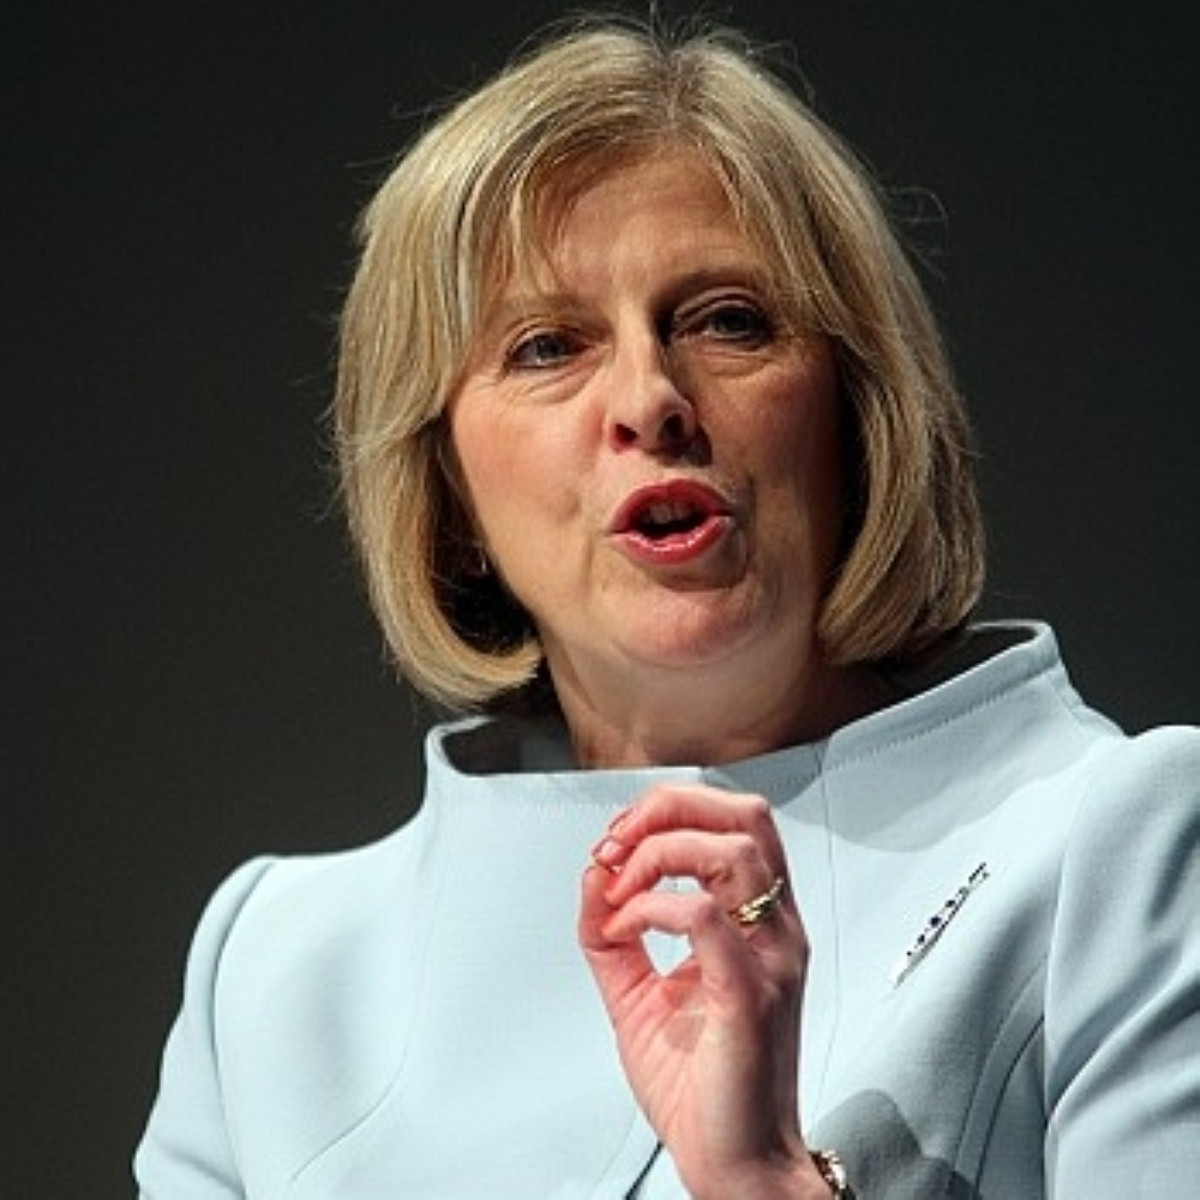 May: 'It's only natural that at times like this we ask who polices the police'.